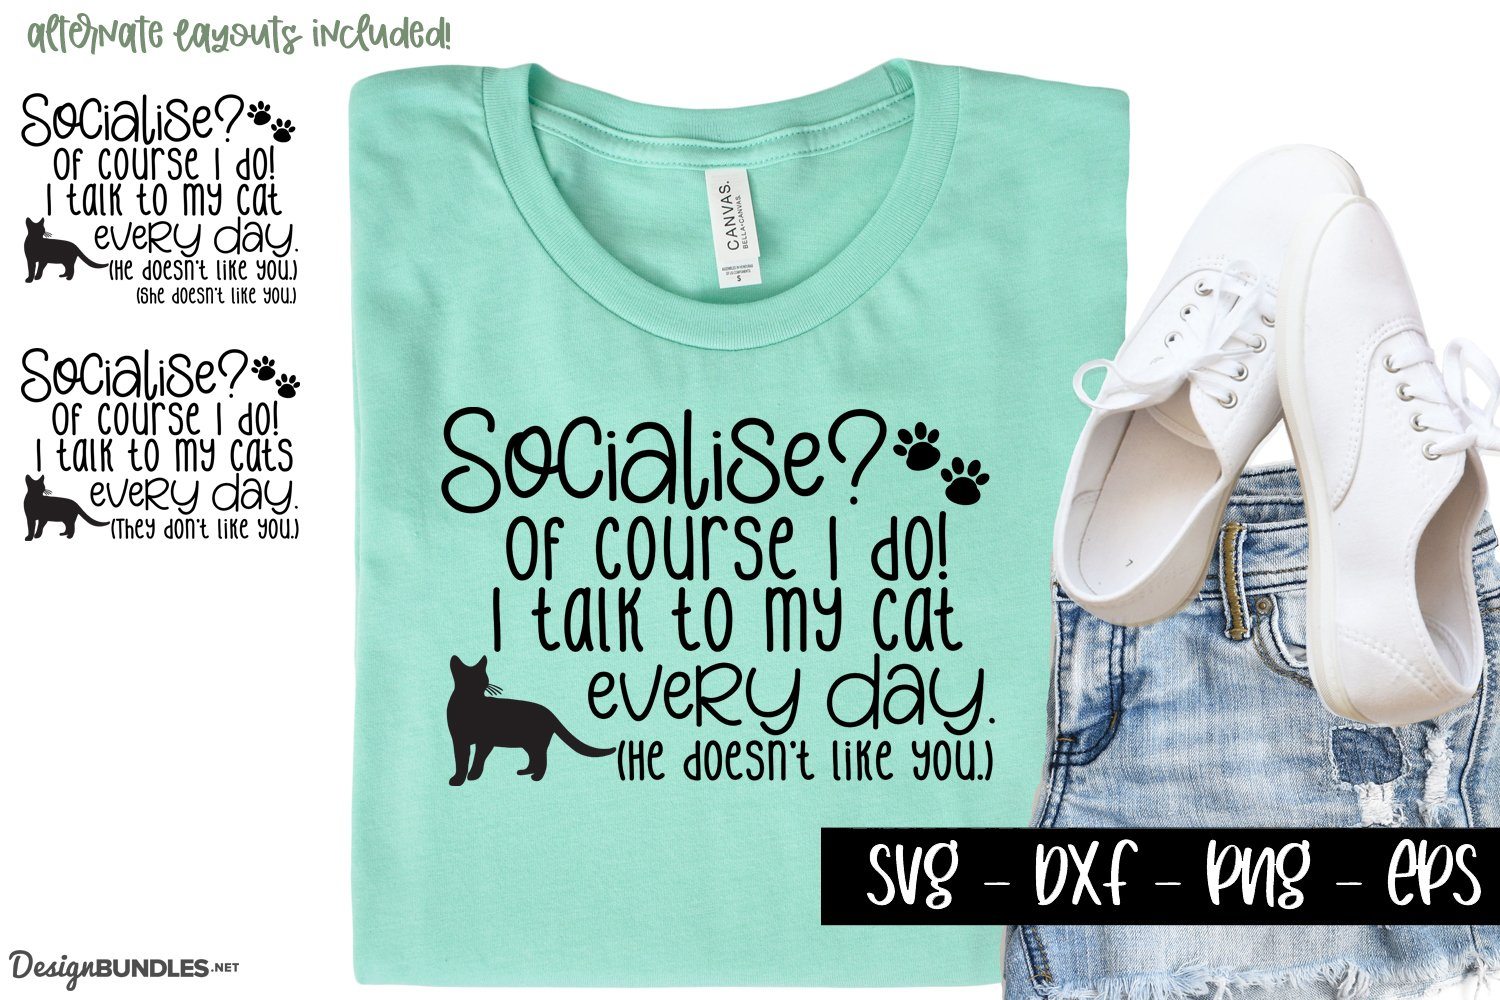 I talk to my cats - Funny cat lovers svg example image 1